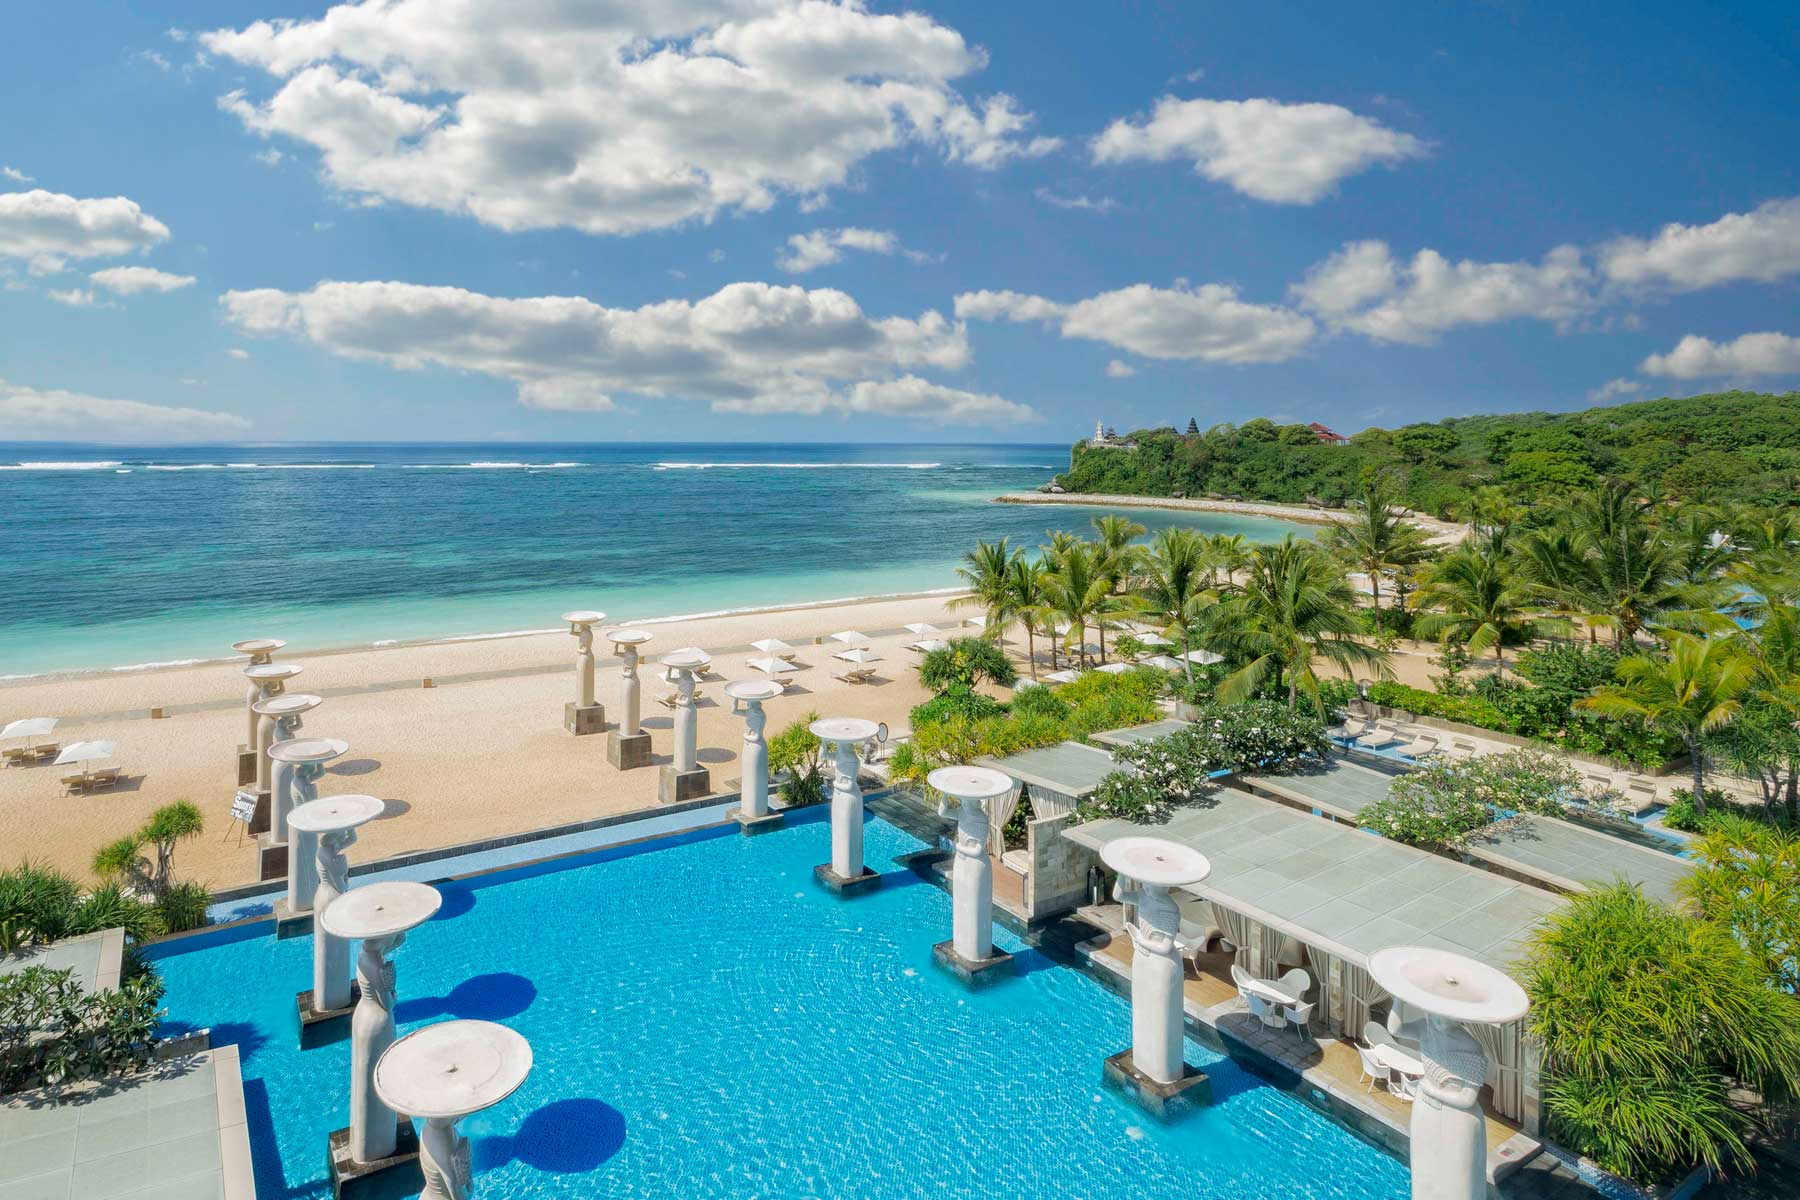 Pool and beach view of The Mulia in Bali